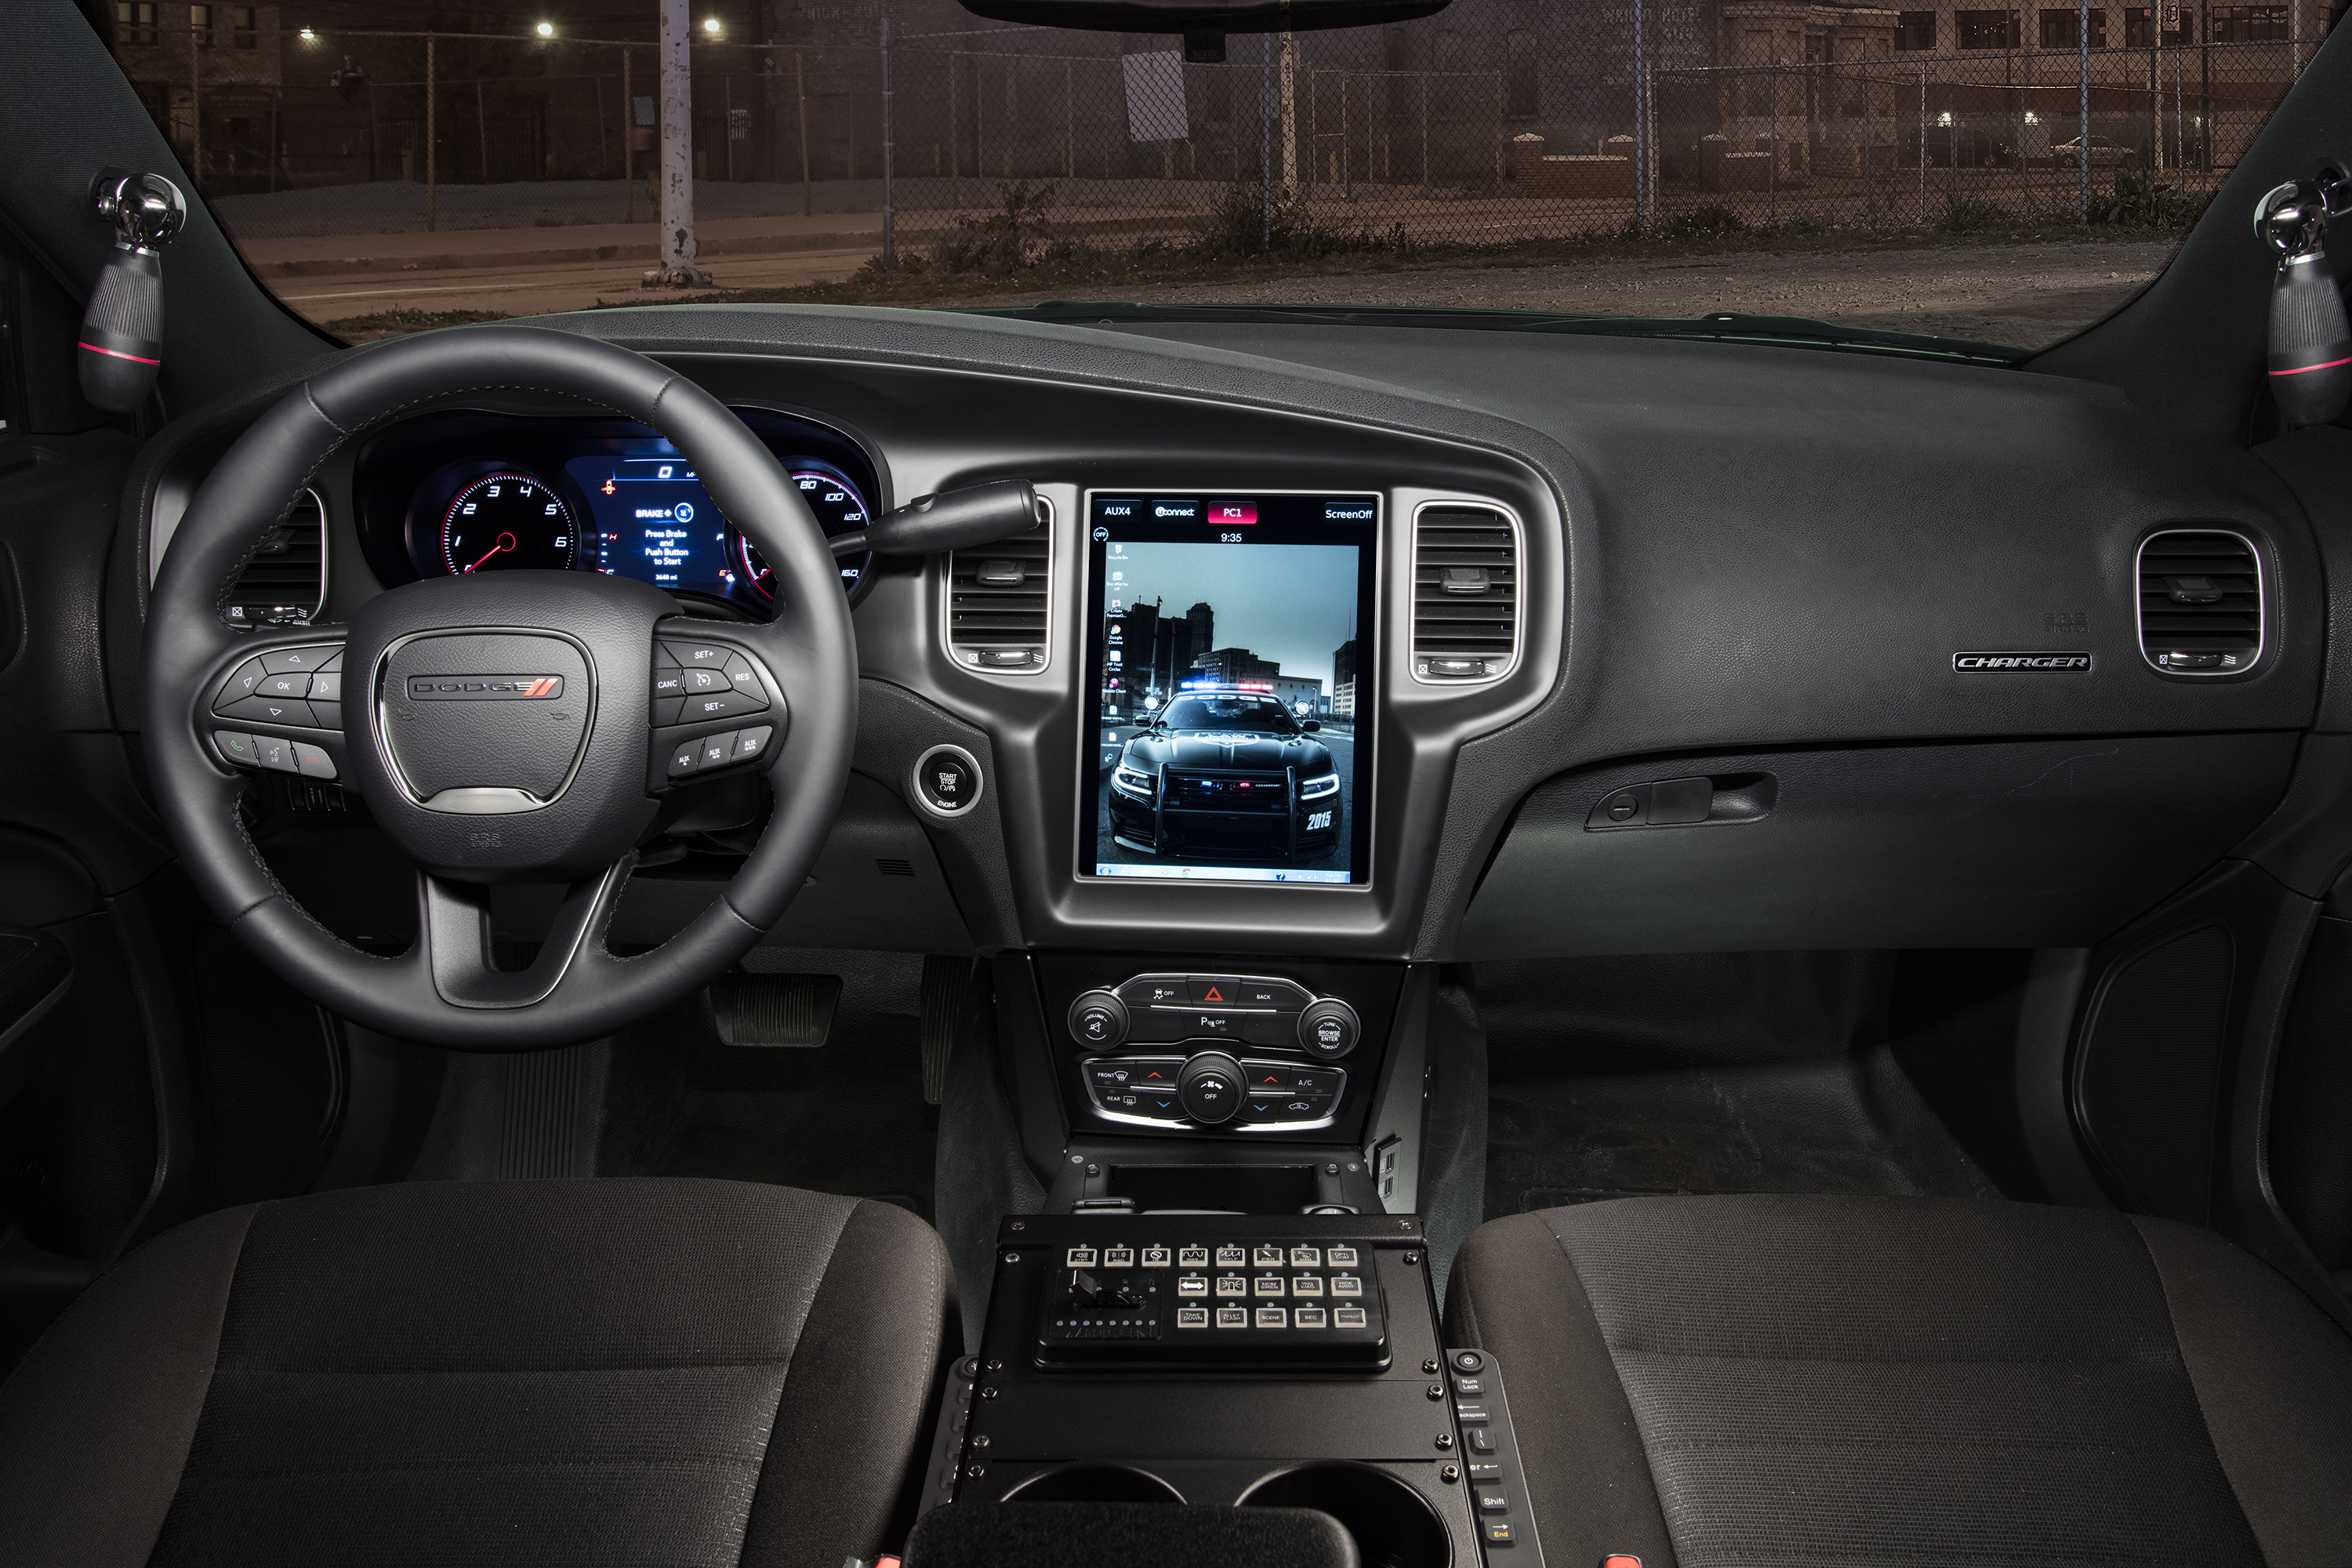 Dodge Installing 12.1-inch Touchscreen on Police Vehicles